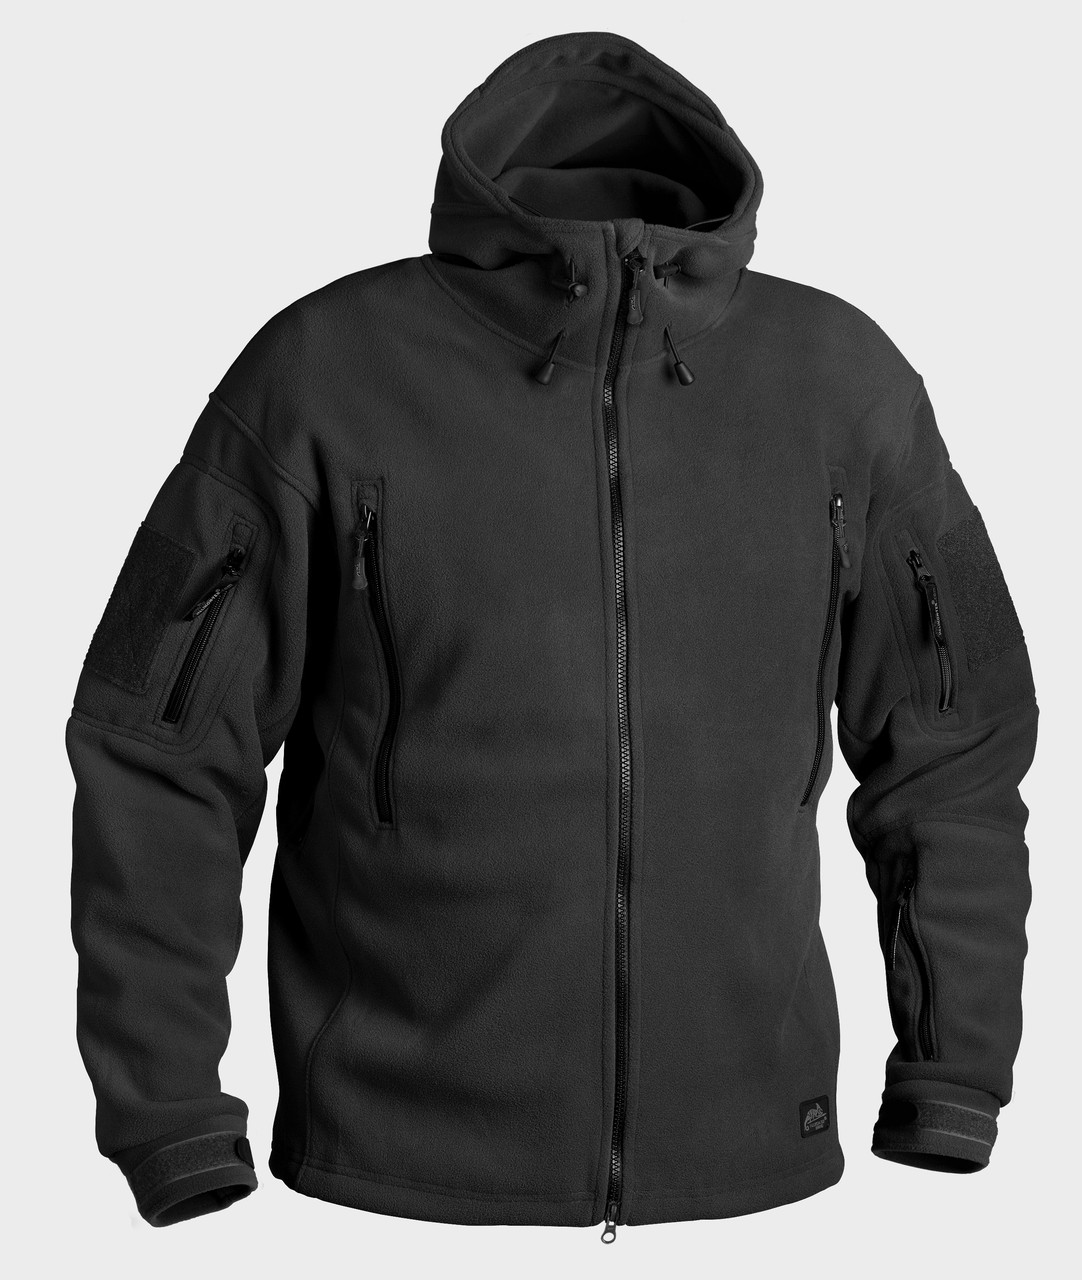 "КУРТКА PATRIOT - DOUBLE FLEECE BLACK ""HELIKON"" ПОЛЬША"